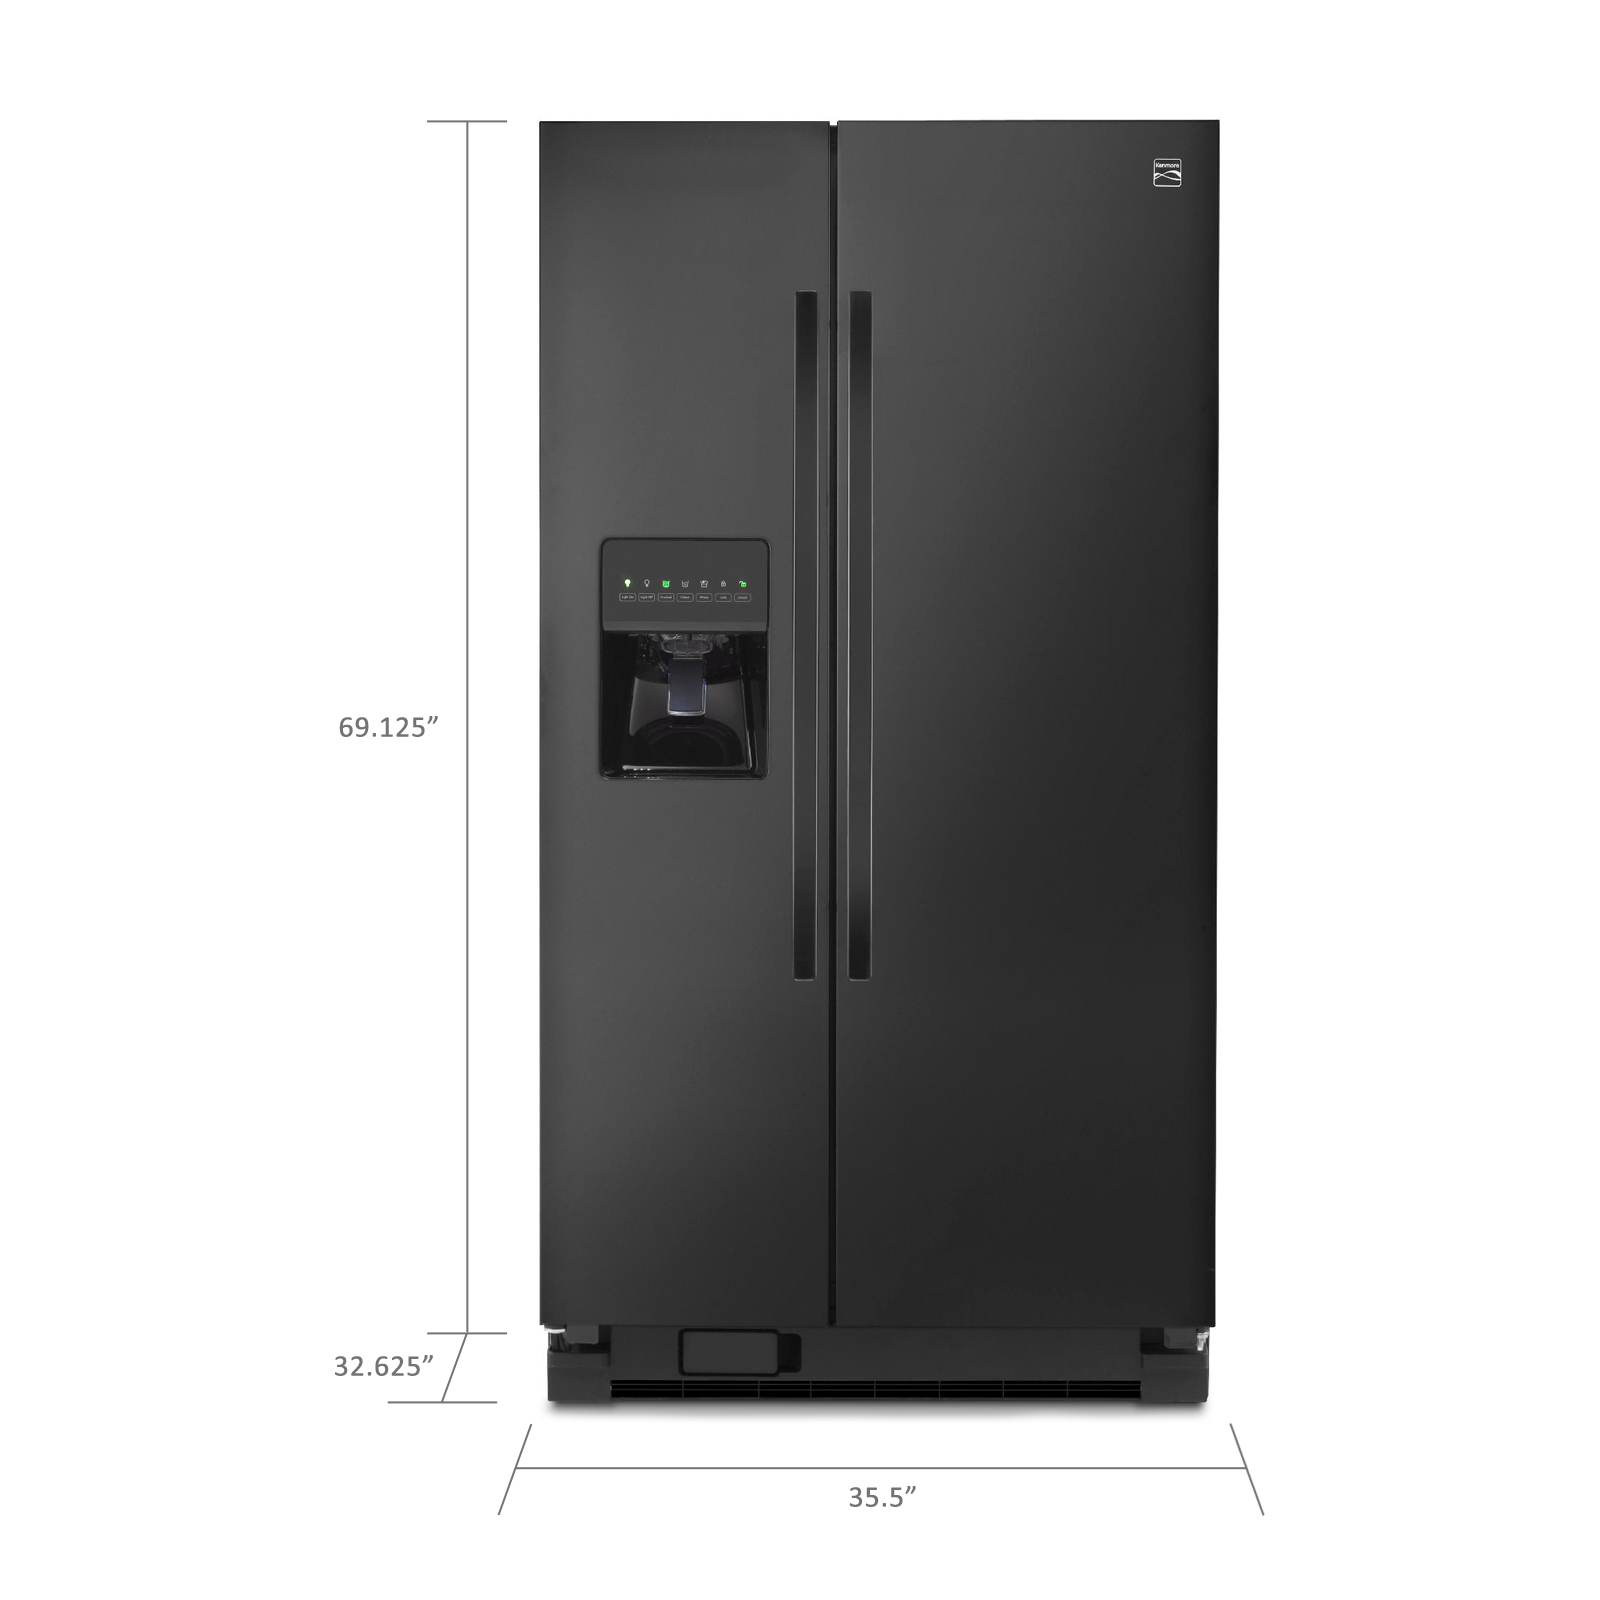 Kenmore 25 cu. ft. Side-by-Side Refrigerator - Black